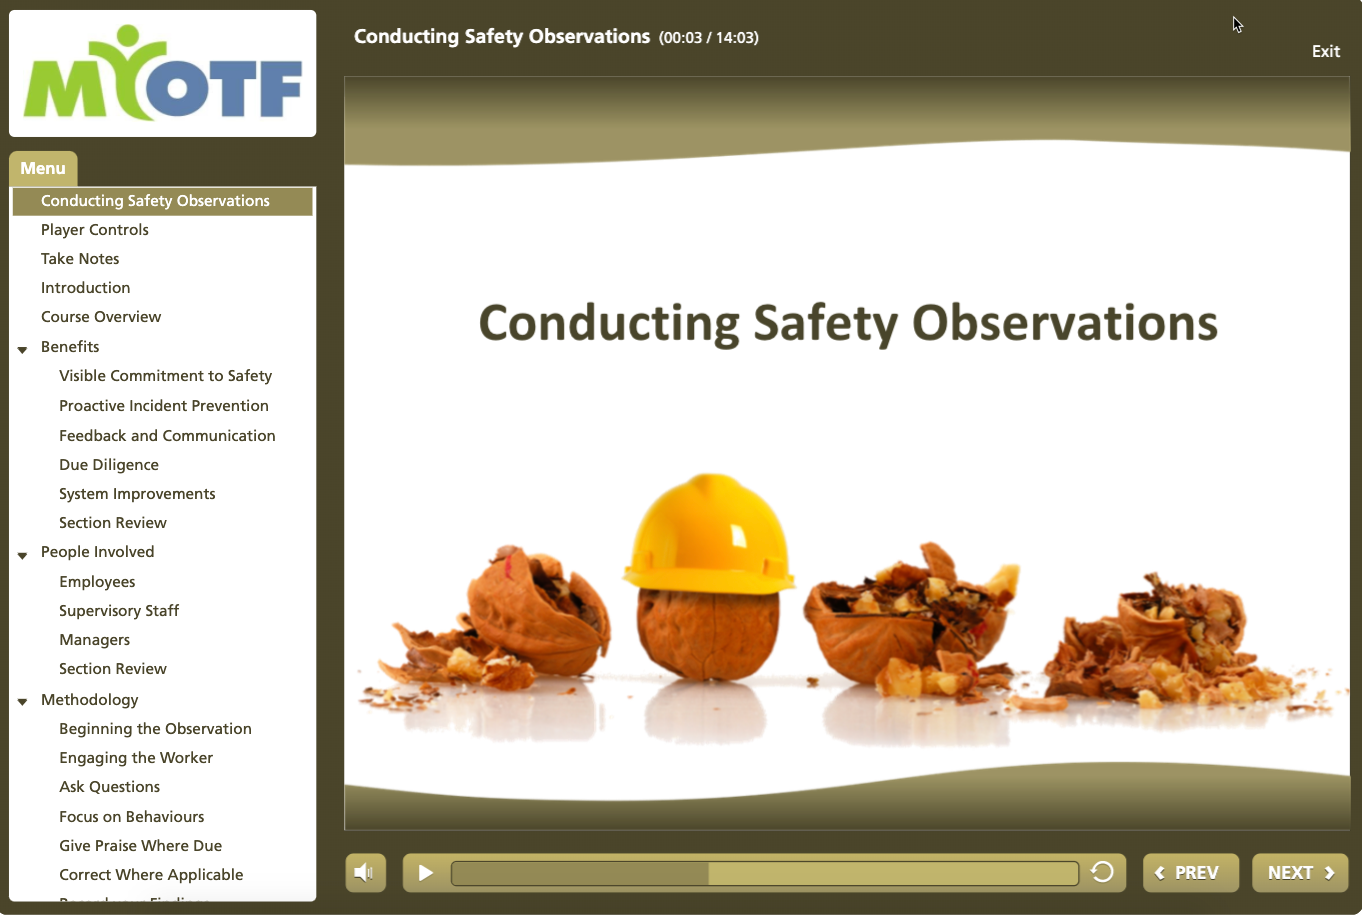 Conducting Safety Observations